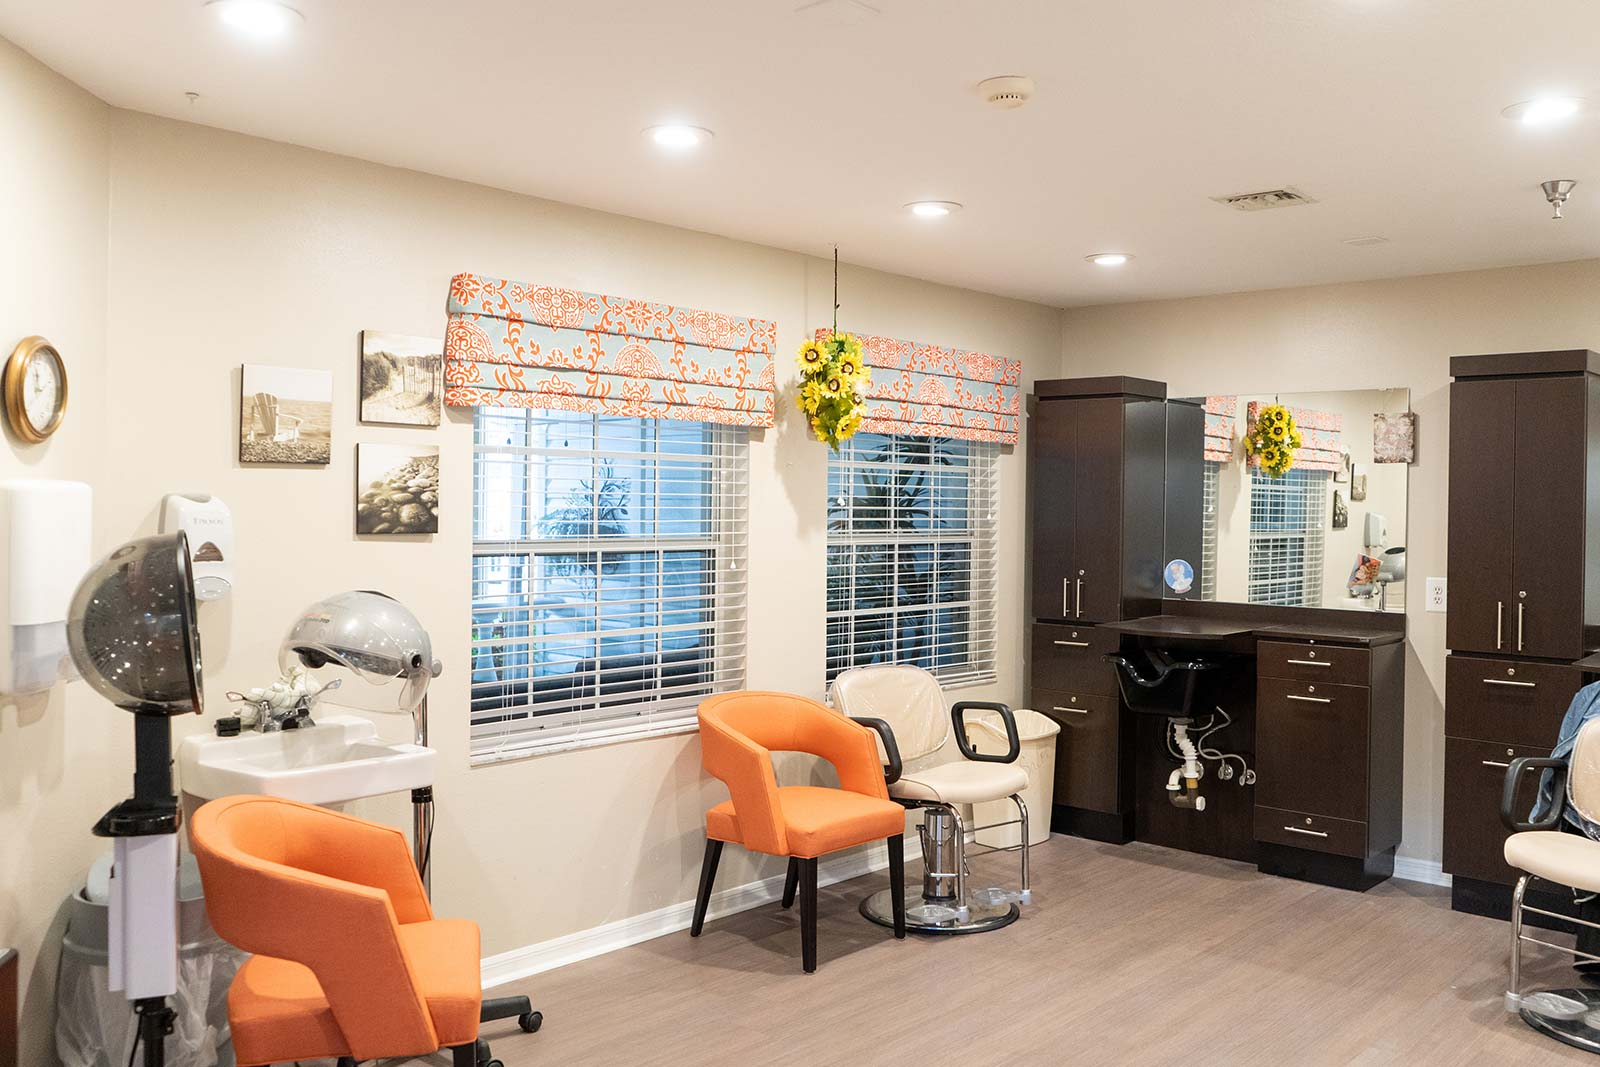 Beauty salon and barber shop at Heron House assisted living and memory care community in Sarasota, FL